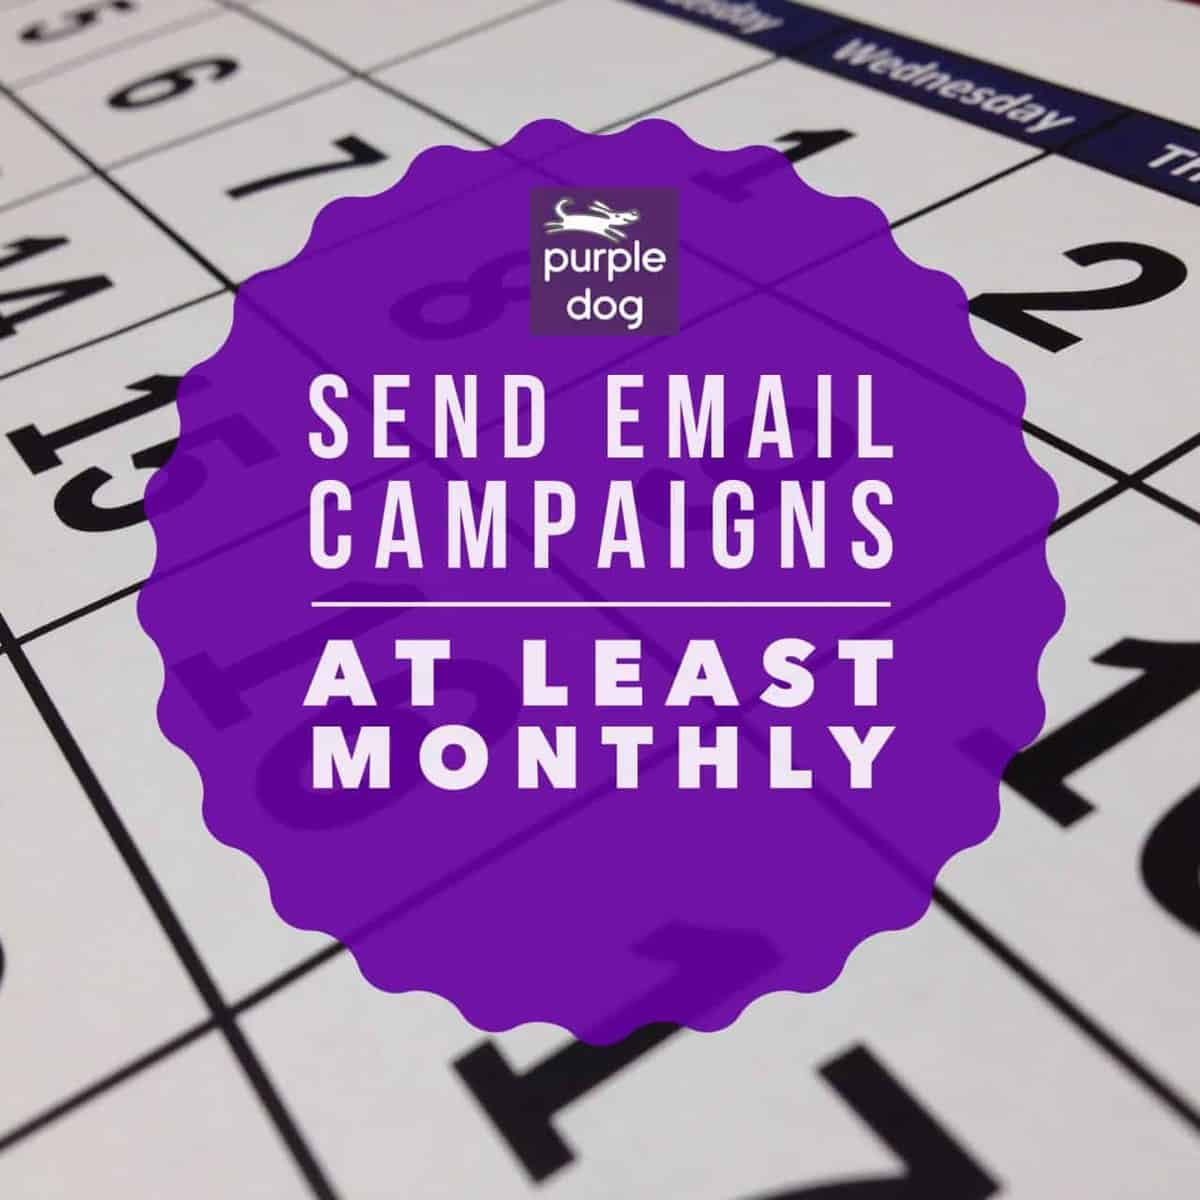 send email campaigns at least monthly